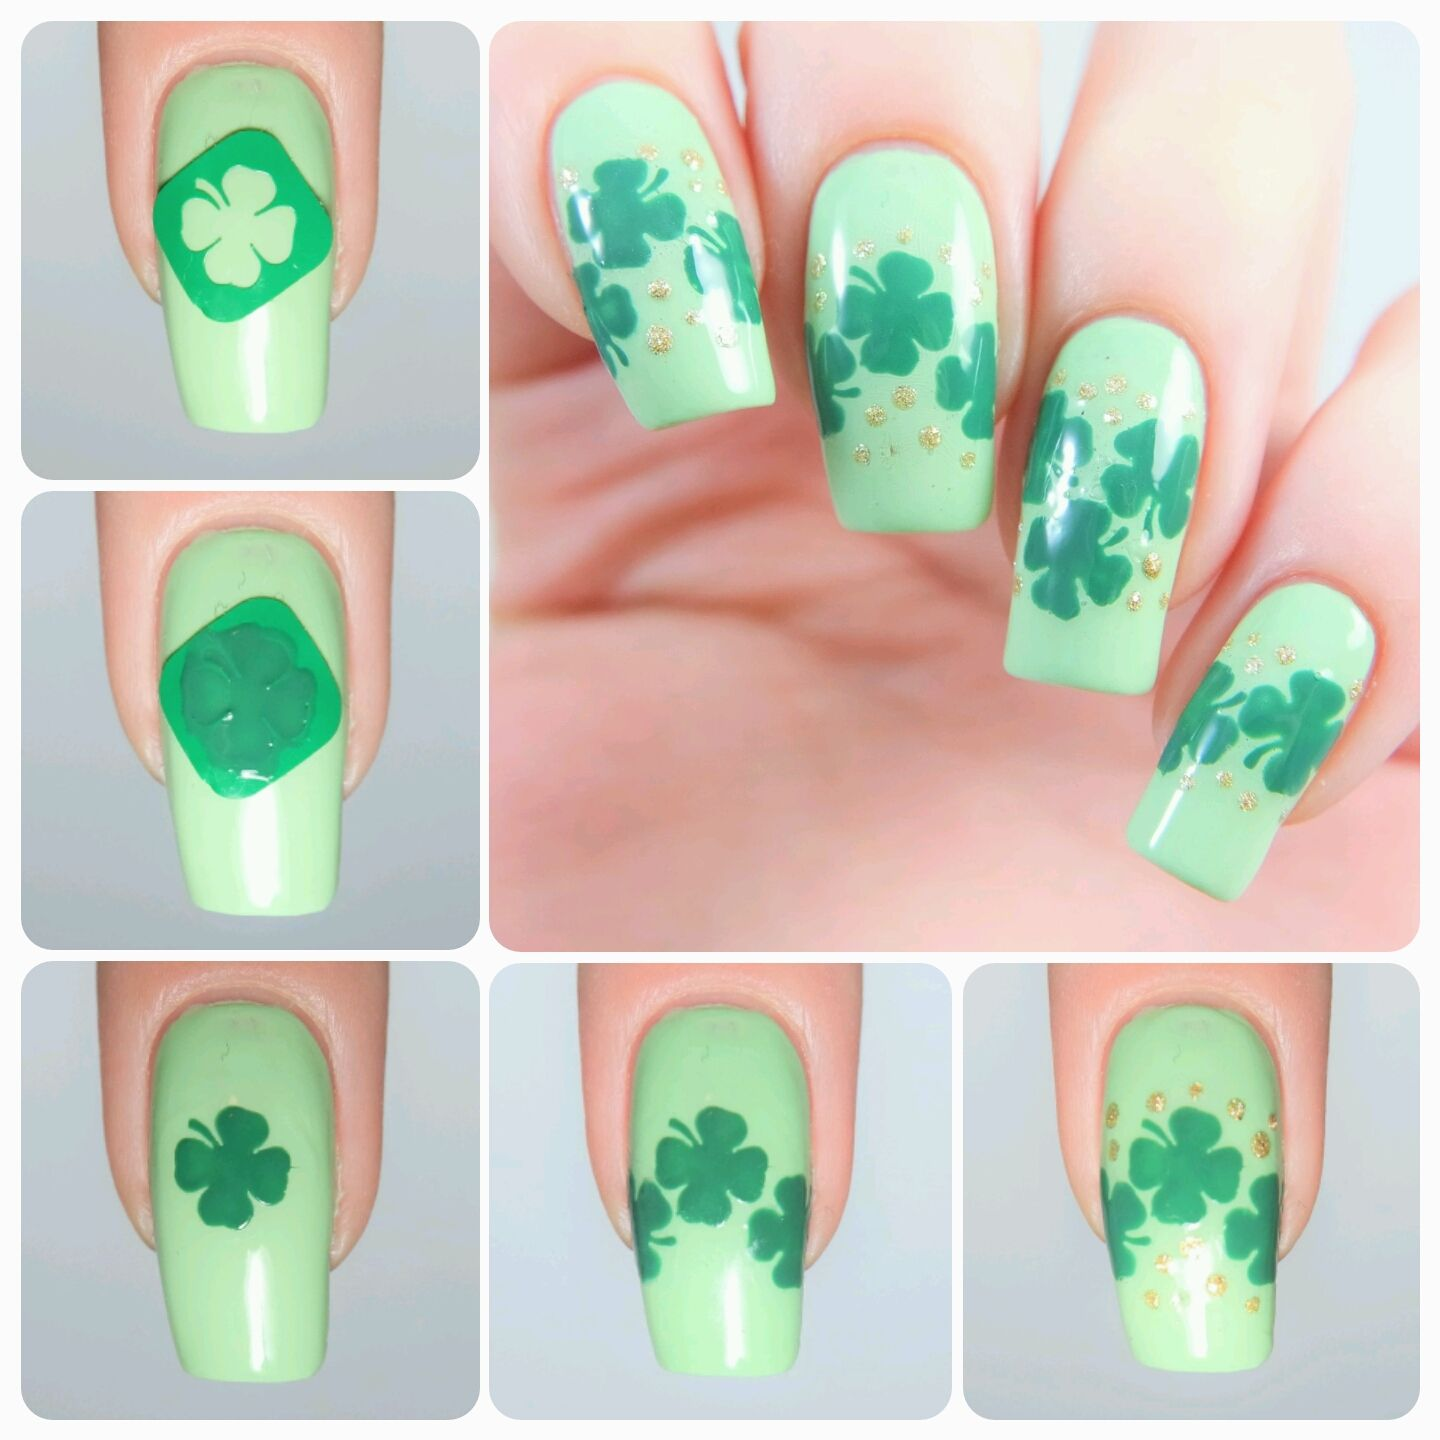 Four Leaf Clover Nail Decals | Party manicure, Nail decals and Manicure